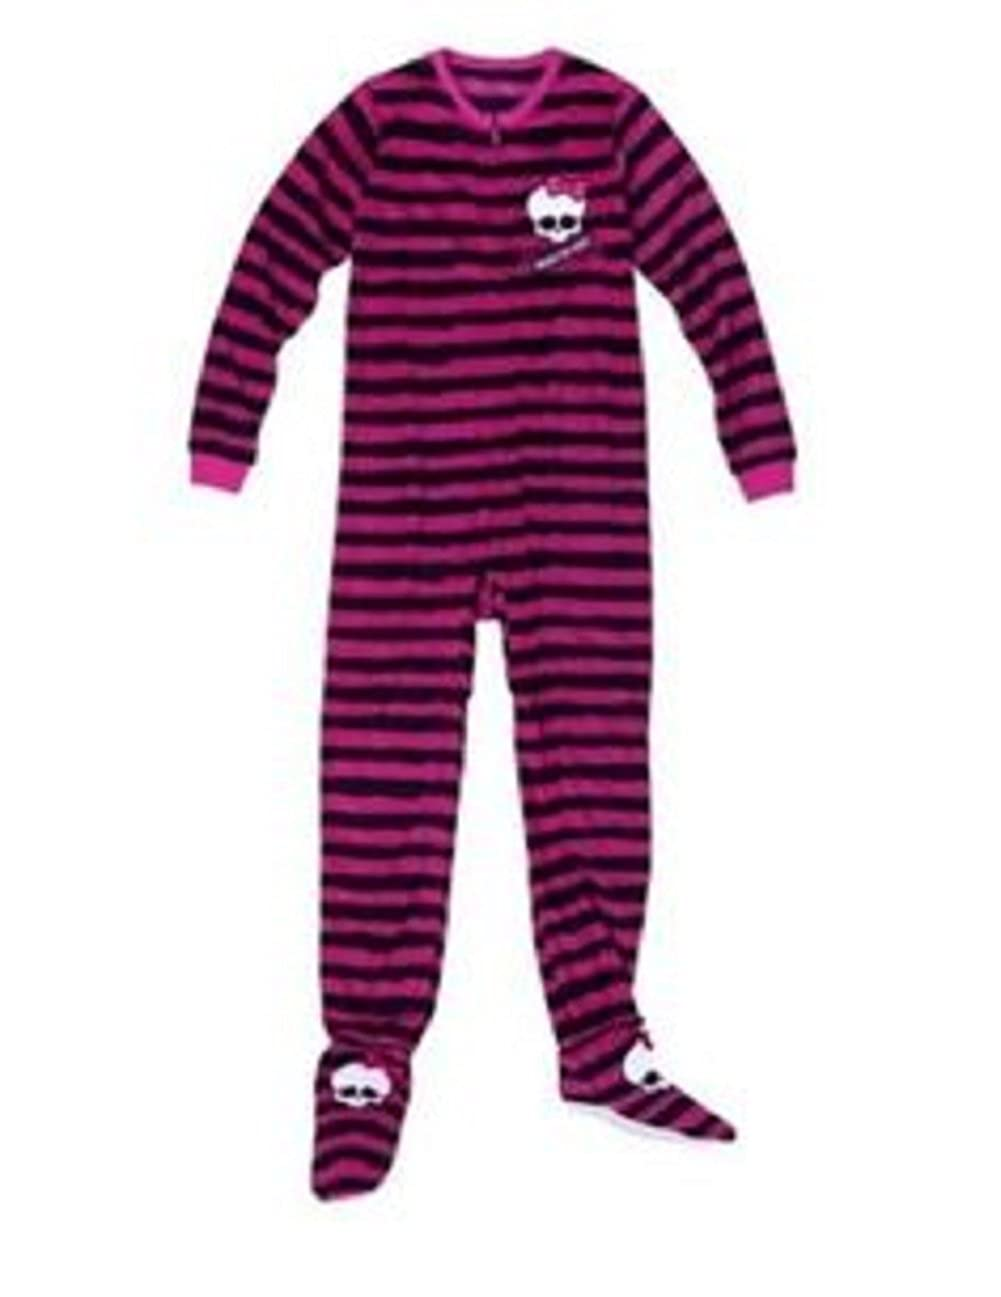 FUN FOOTIES Boys and Girls Cozy and Fun Printed One Piece Footed ... 61451a7c4